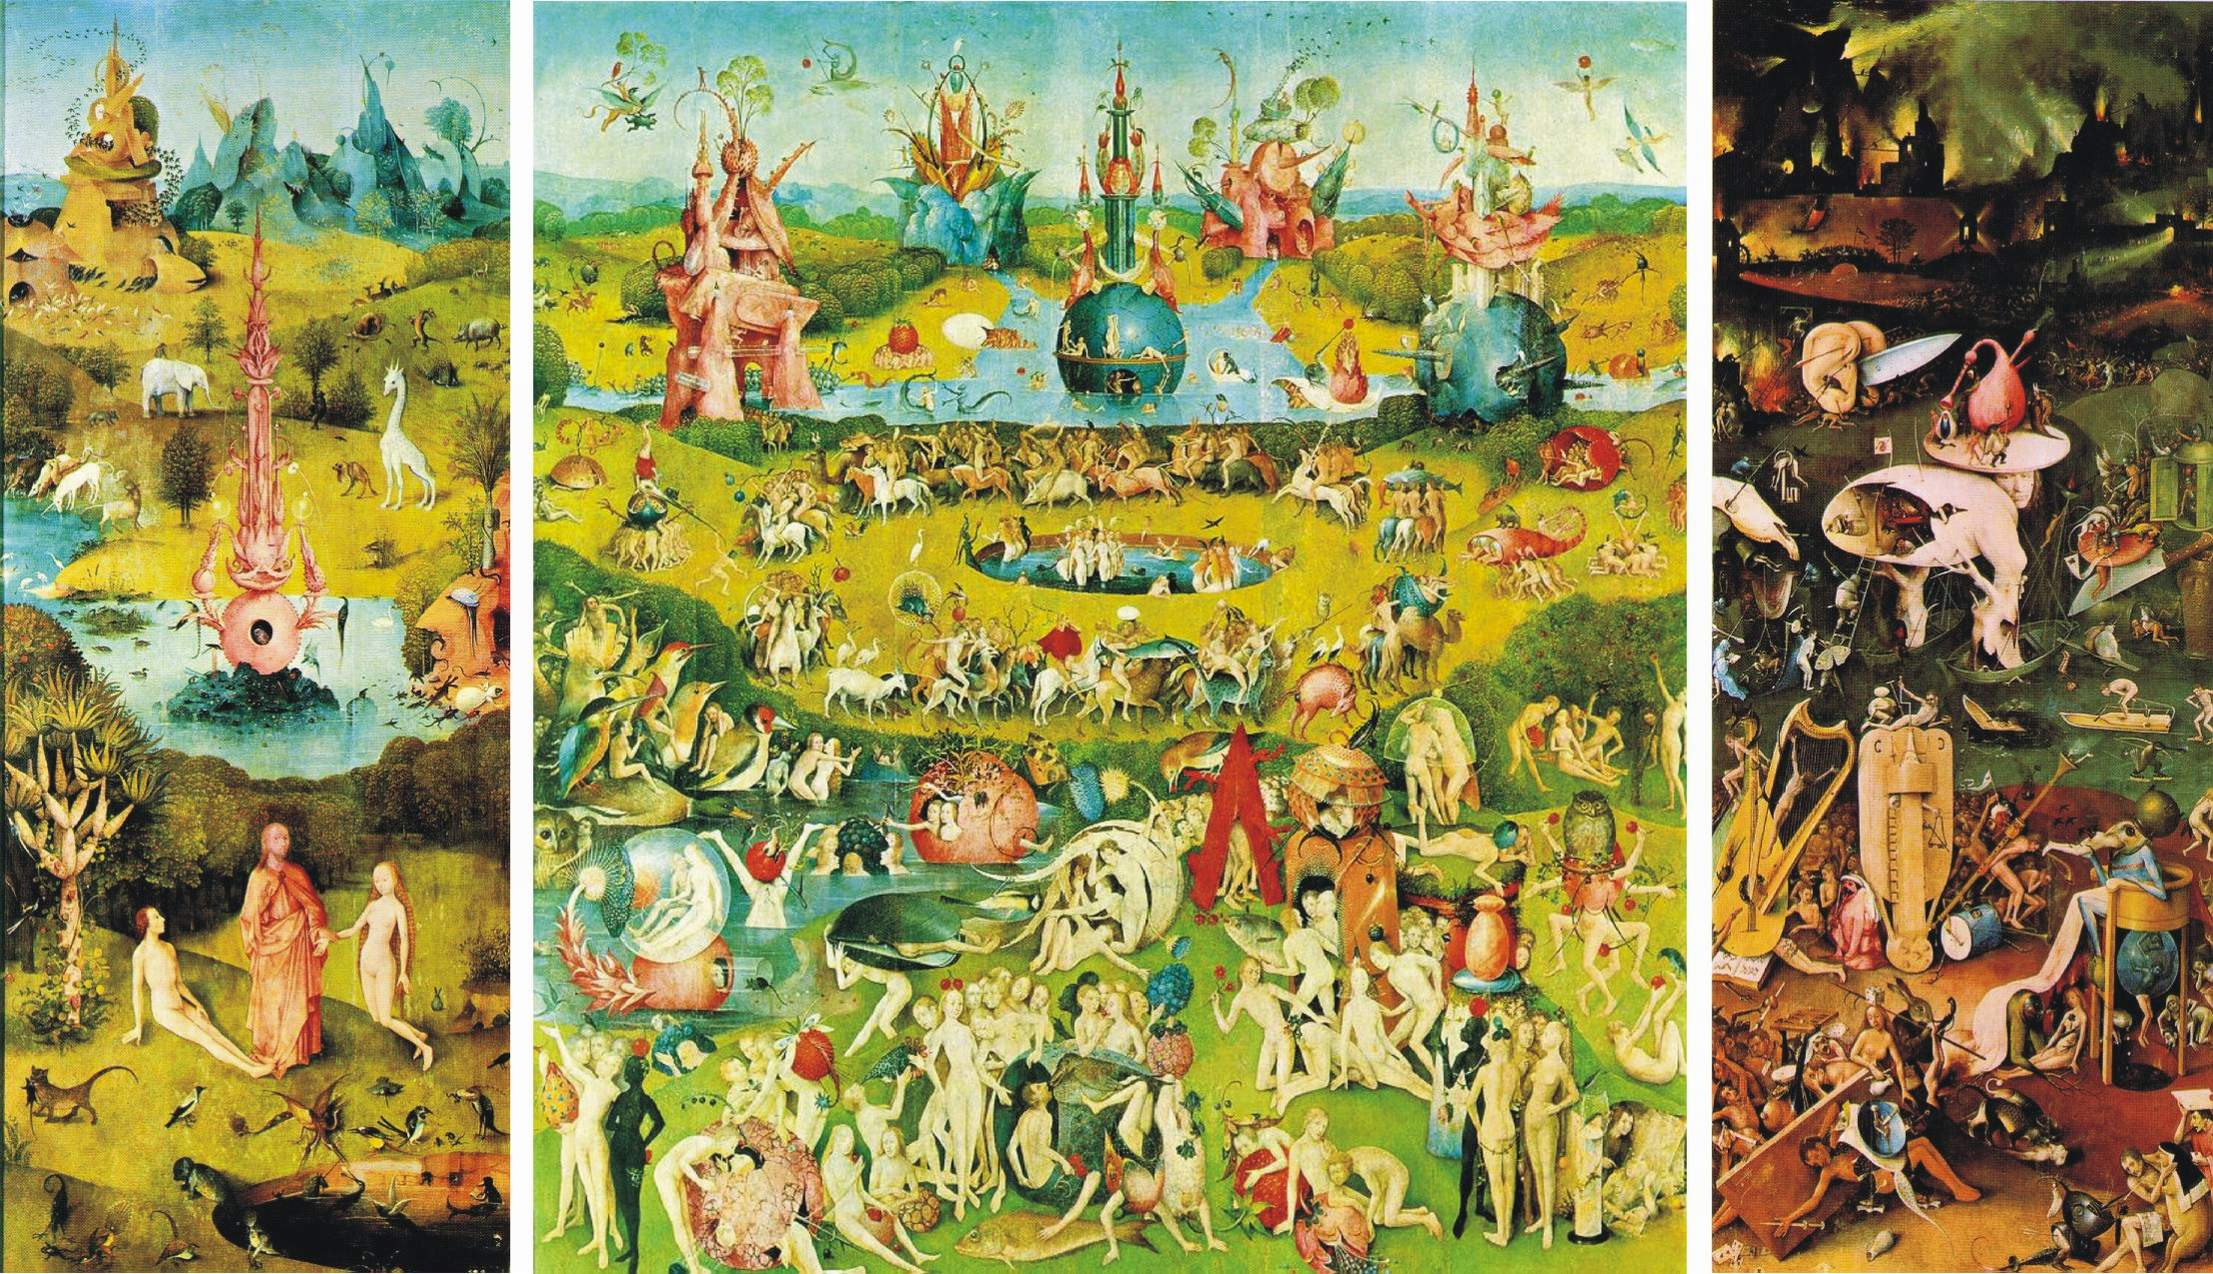 Quotes about Garden of earthly delights (14 quotes)